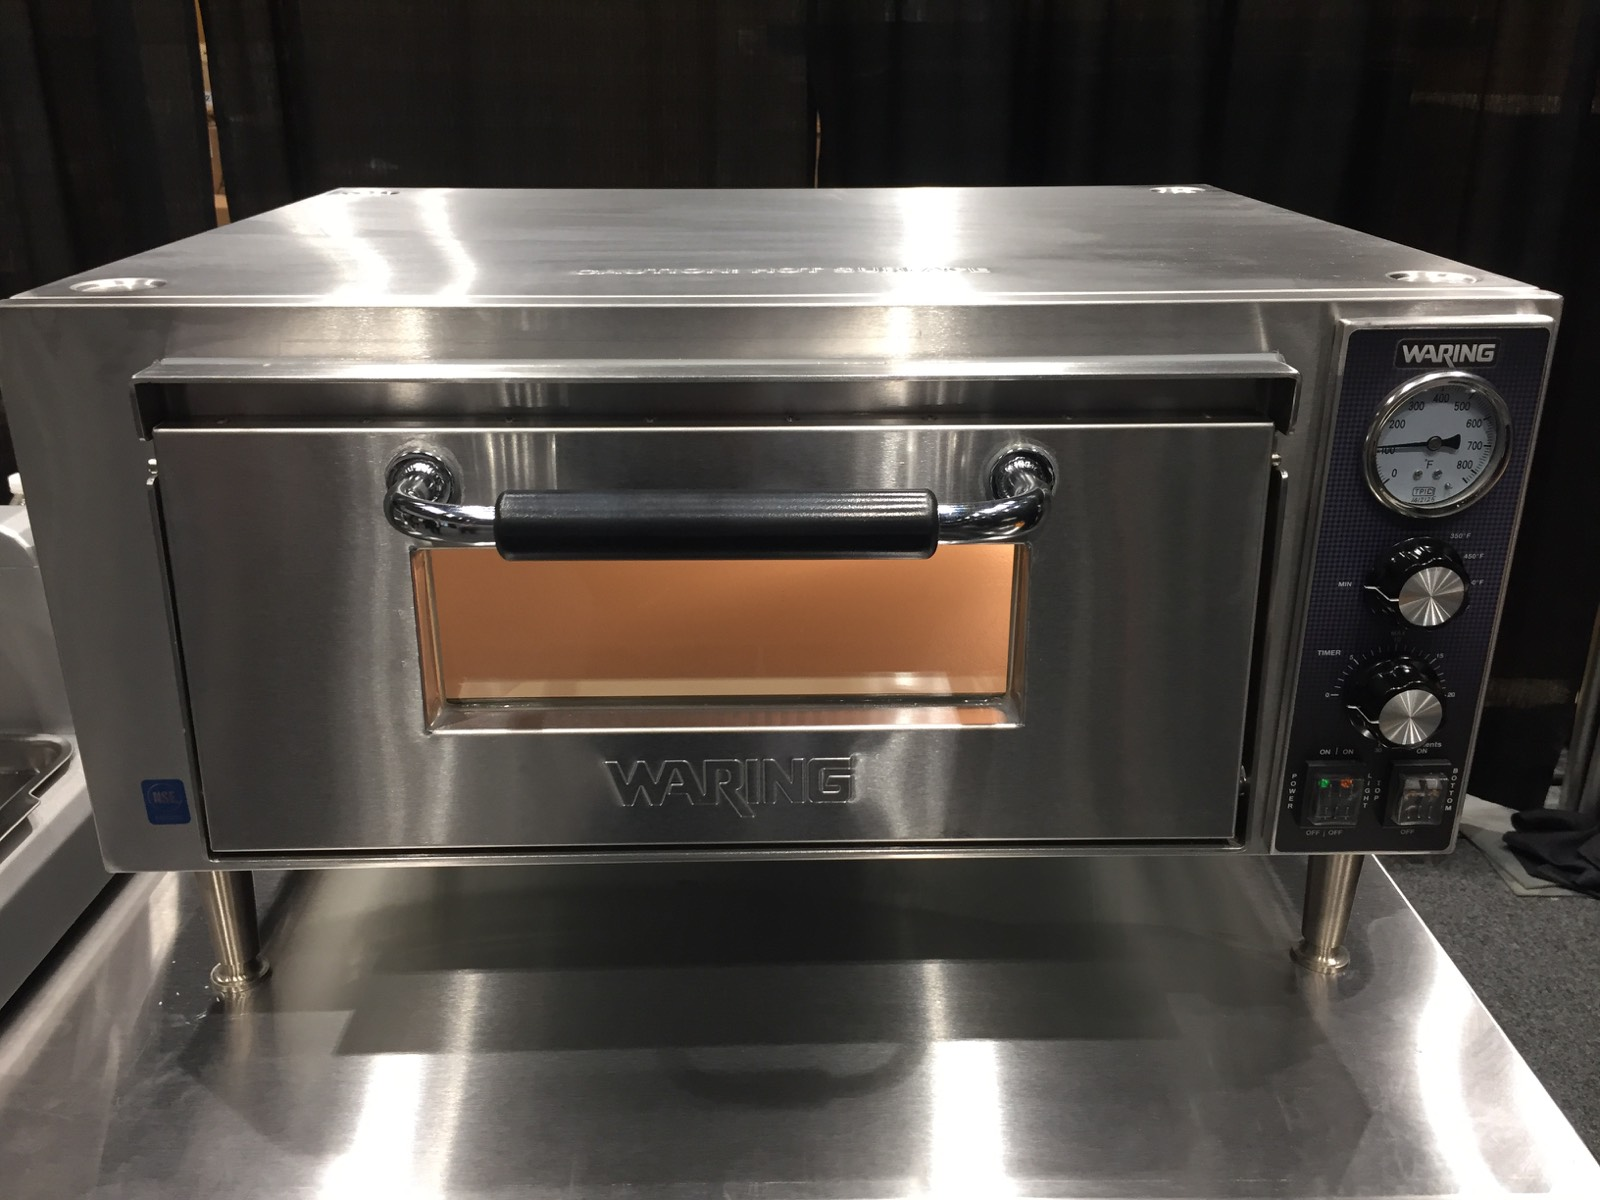 Commercial grade pizza oven (Waring)